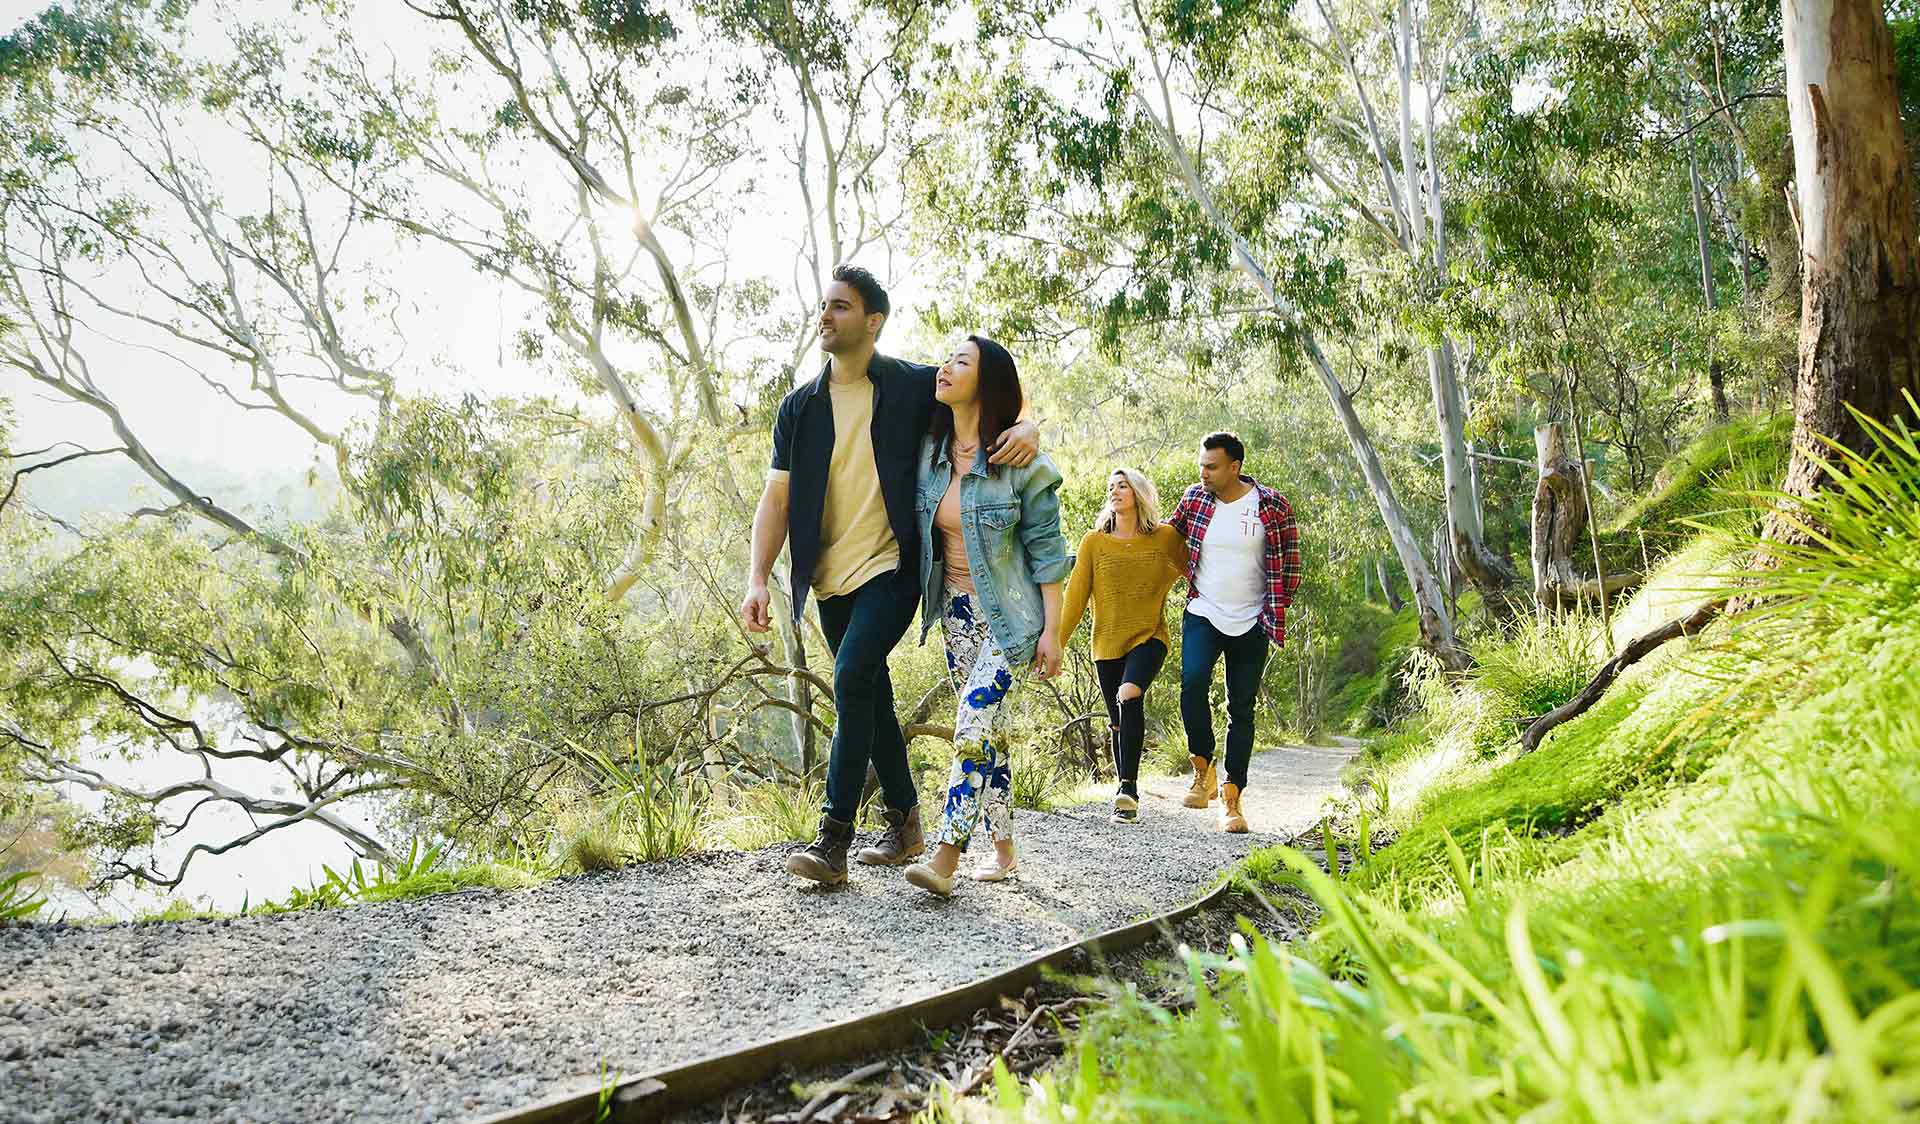 Four friends walk alongside the Yarra River through Yarra Bend Park.